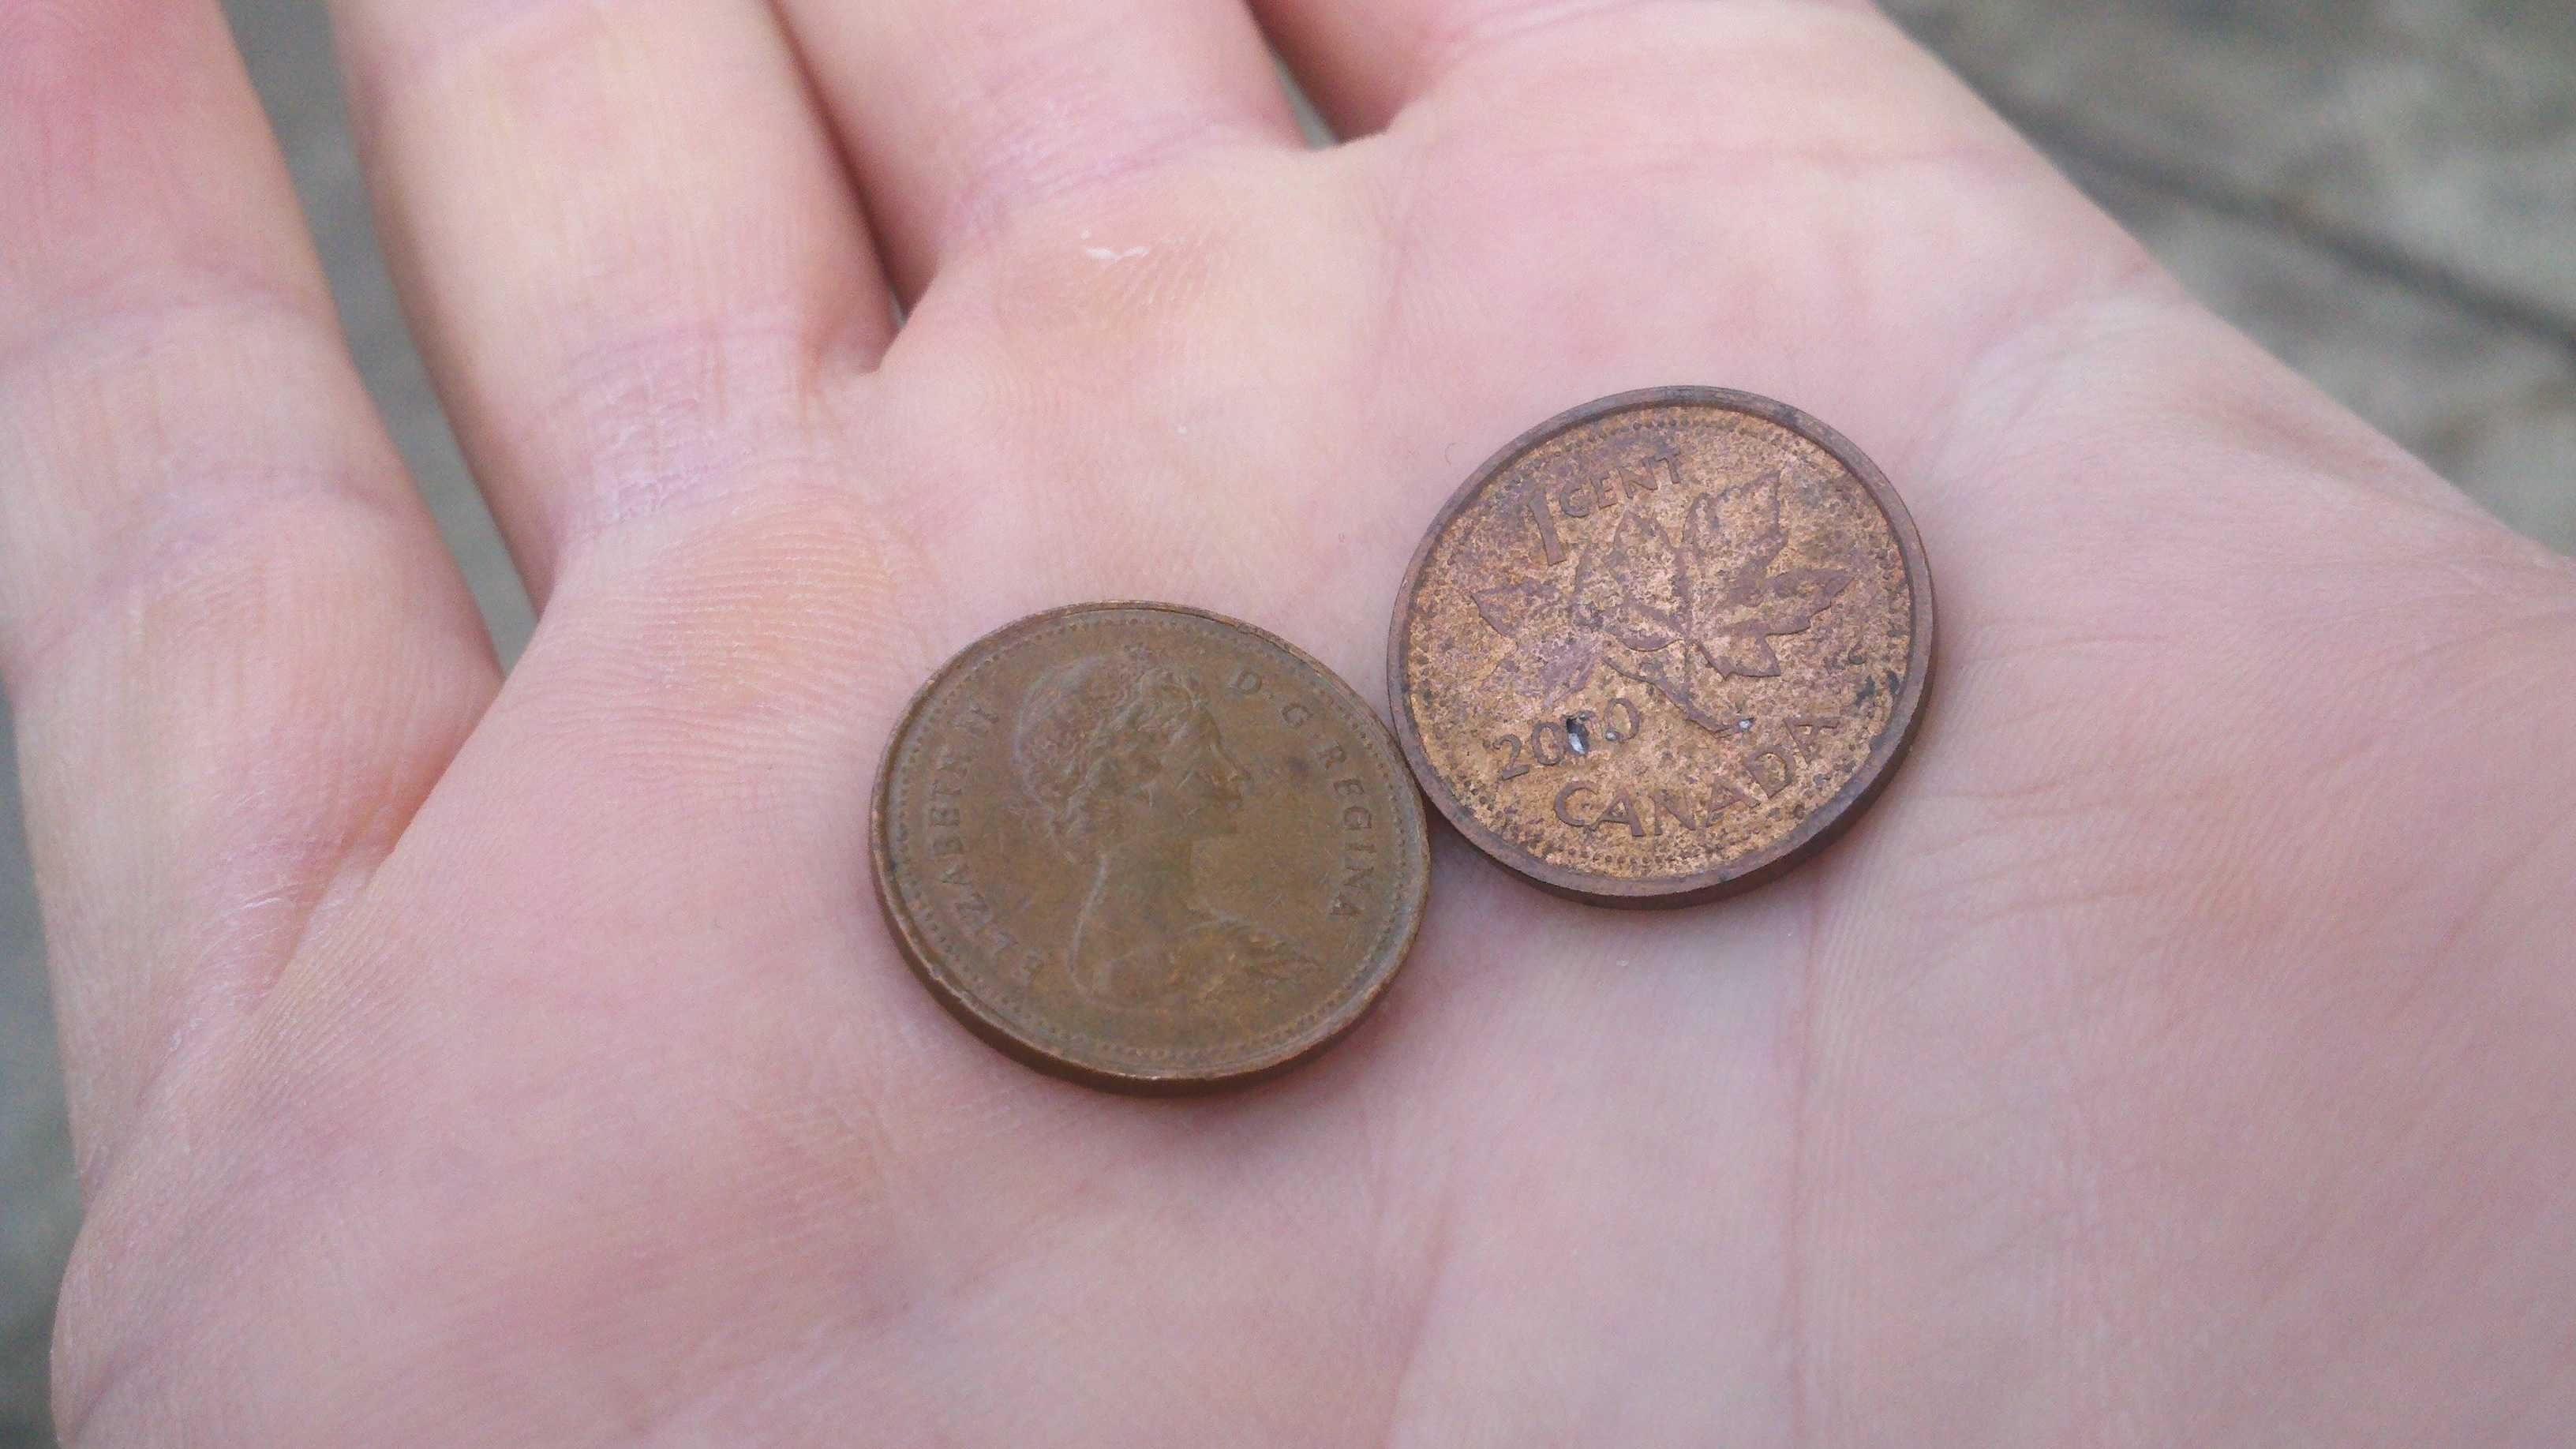 Two Canadian pennies.